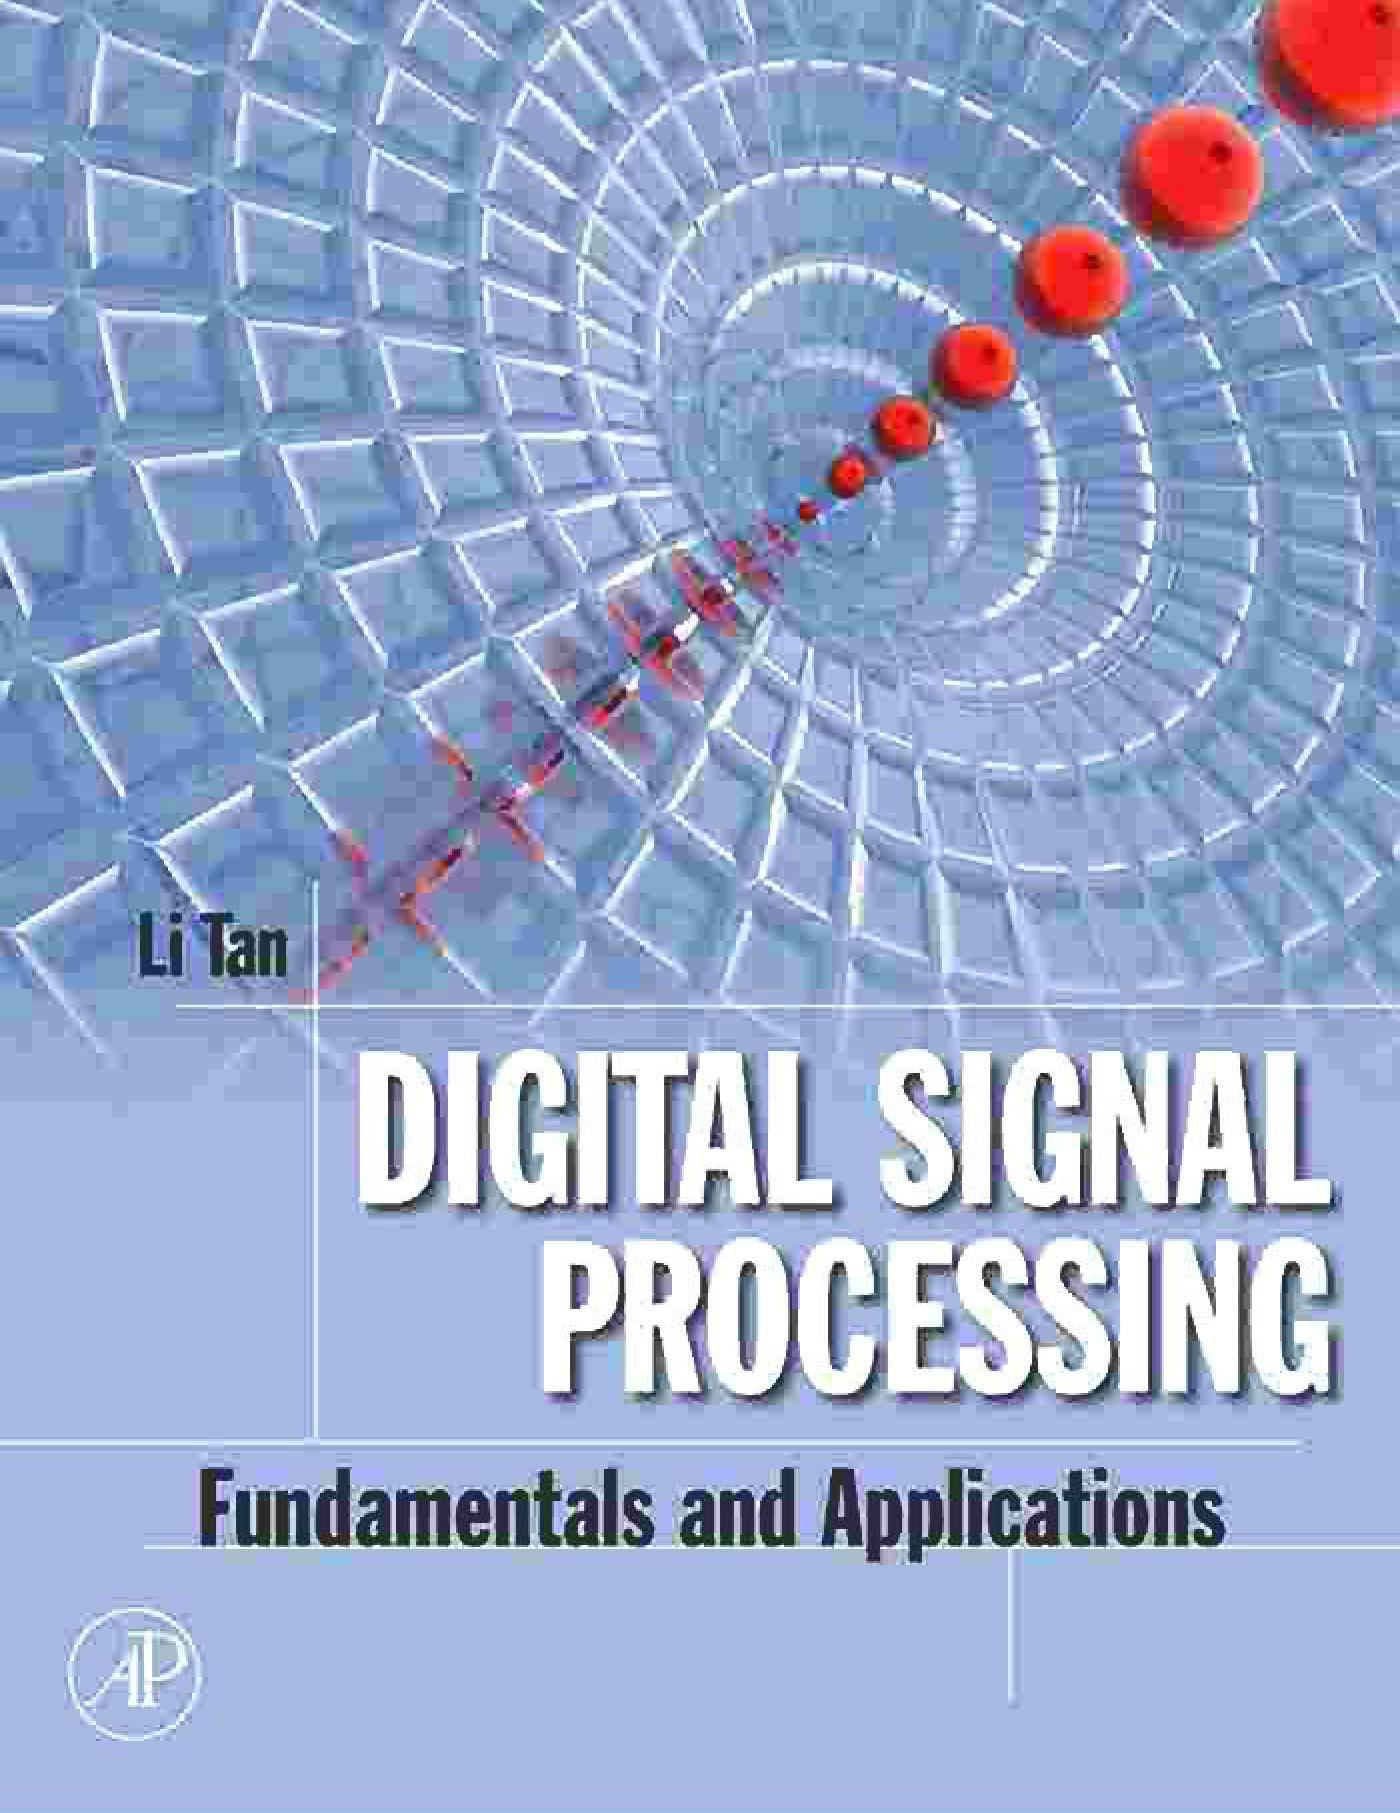 Digital Signal Processing: Fundamentals and Applications By: Tan, Li